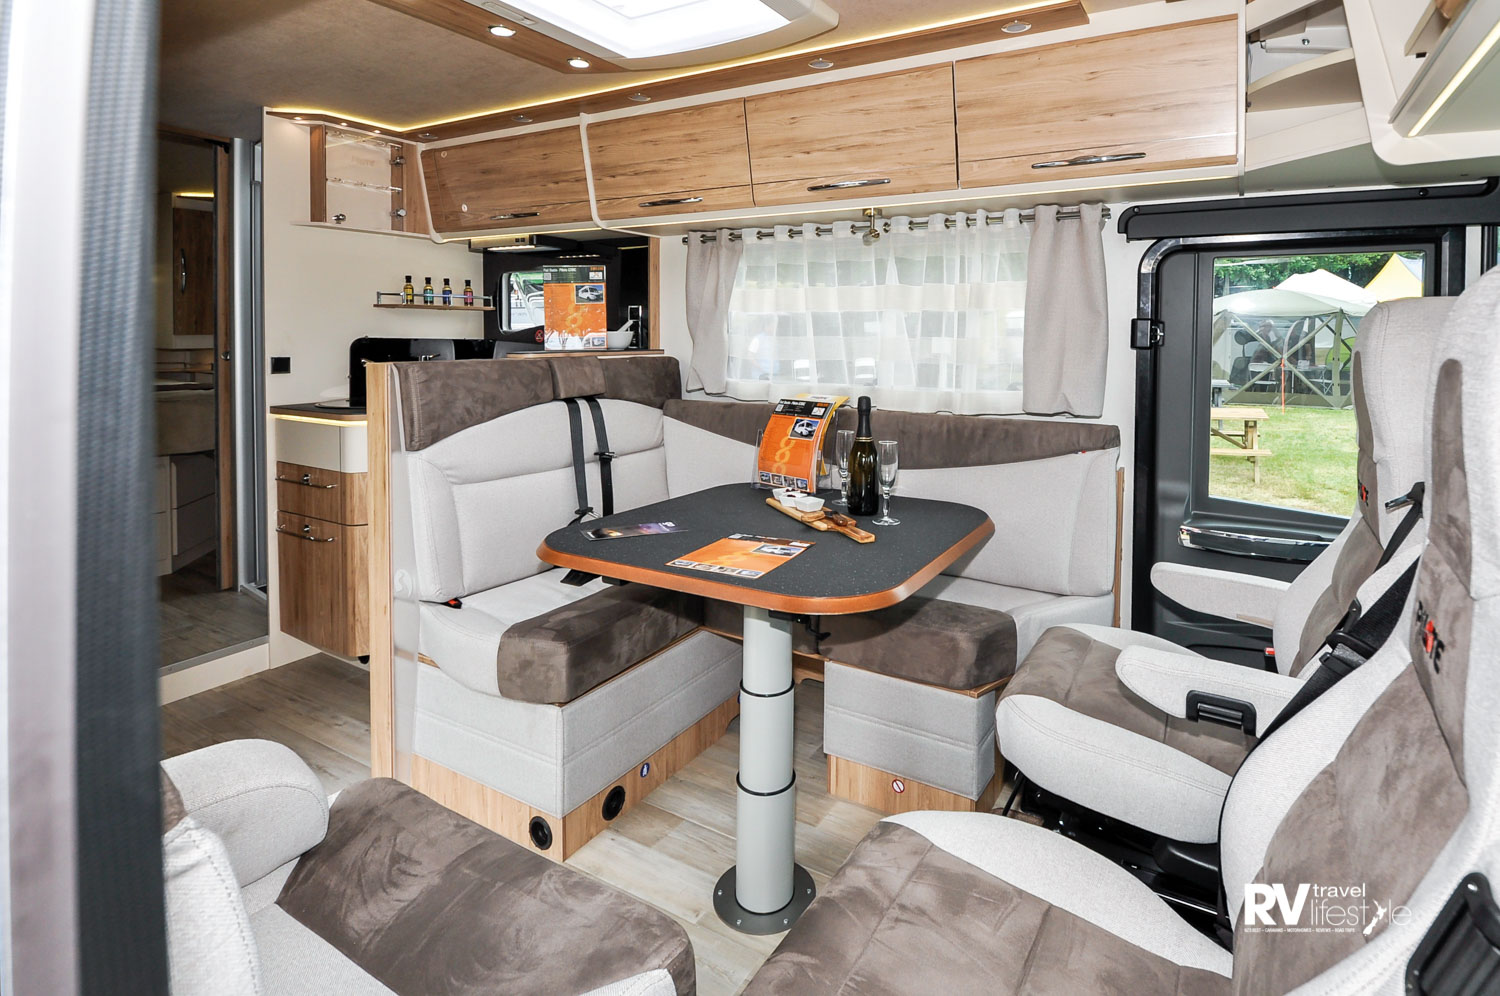 The front cab and dinette view, nice lighting and good-sized seating available, adjustable table height, and this area converts to a bed if required